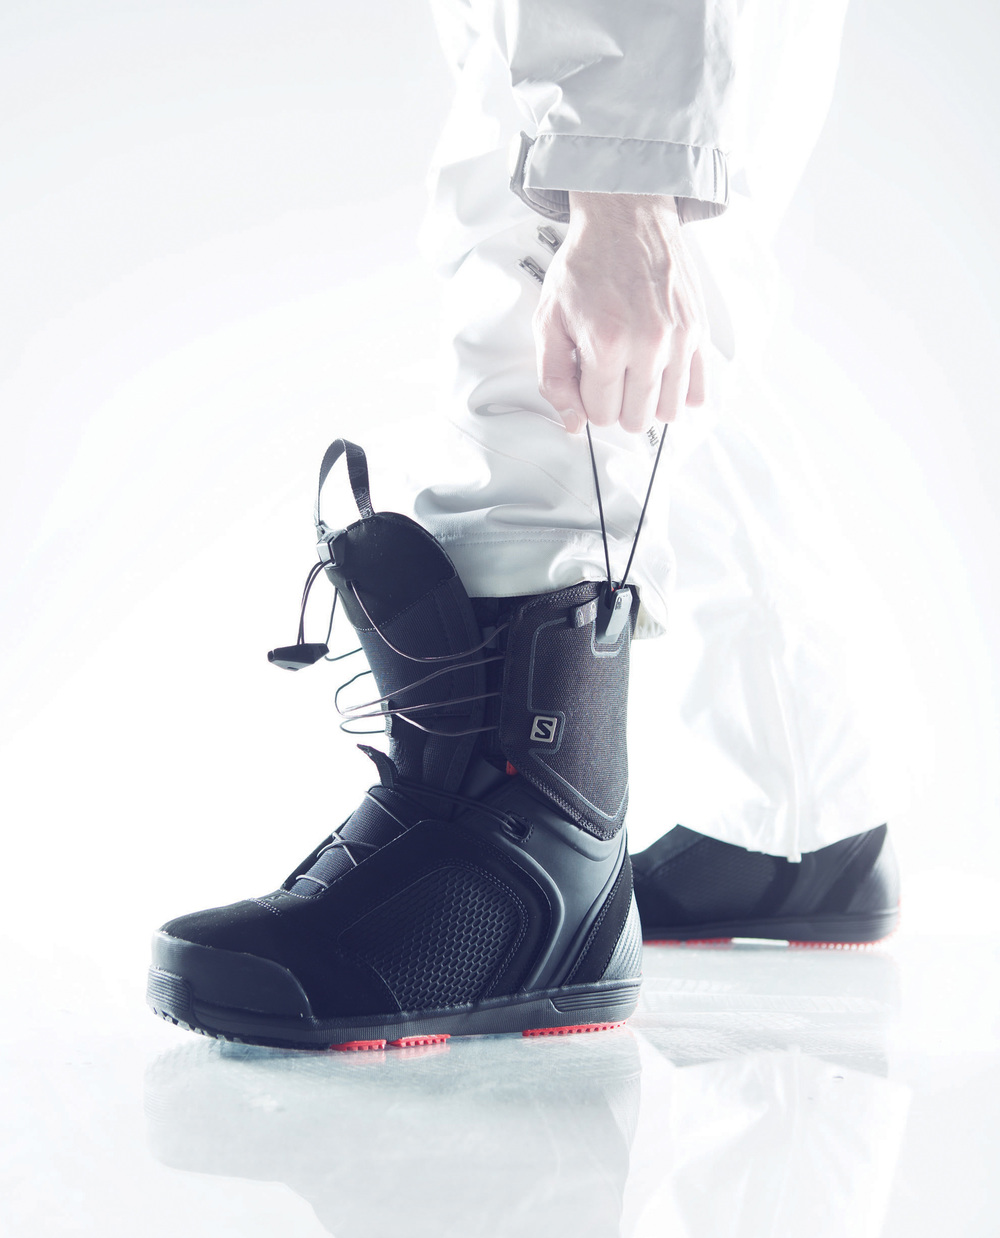 Salomon_Boot_03